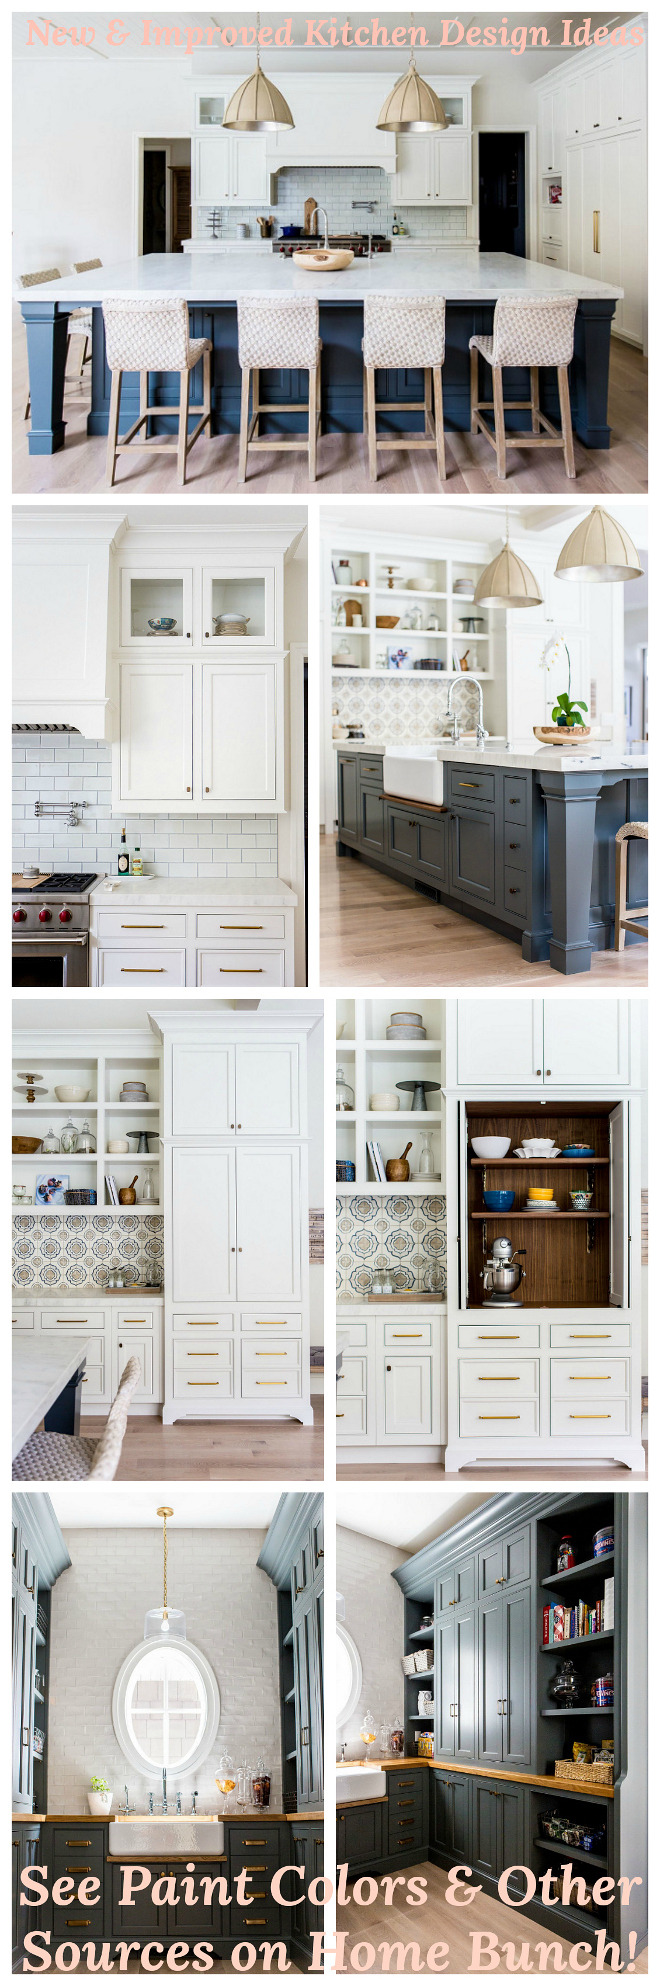 New & Improved Kitchen Design Ideas. New & Improved Kitchen Design Ideas. New & Improved Kitchen Design Ideas #NewandImprovedKitchenDesignIdeas Home Bunch